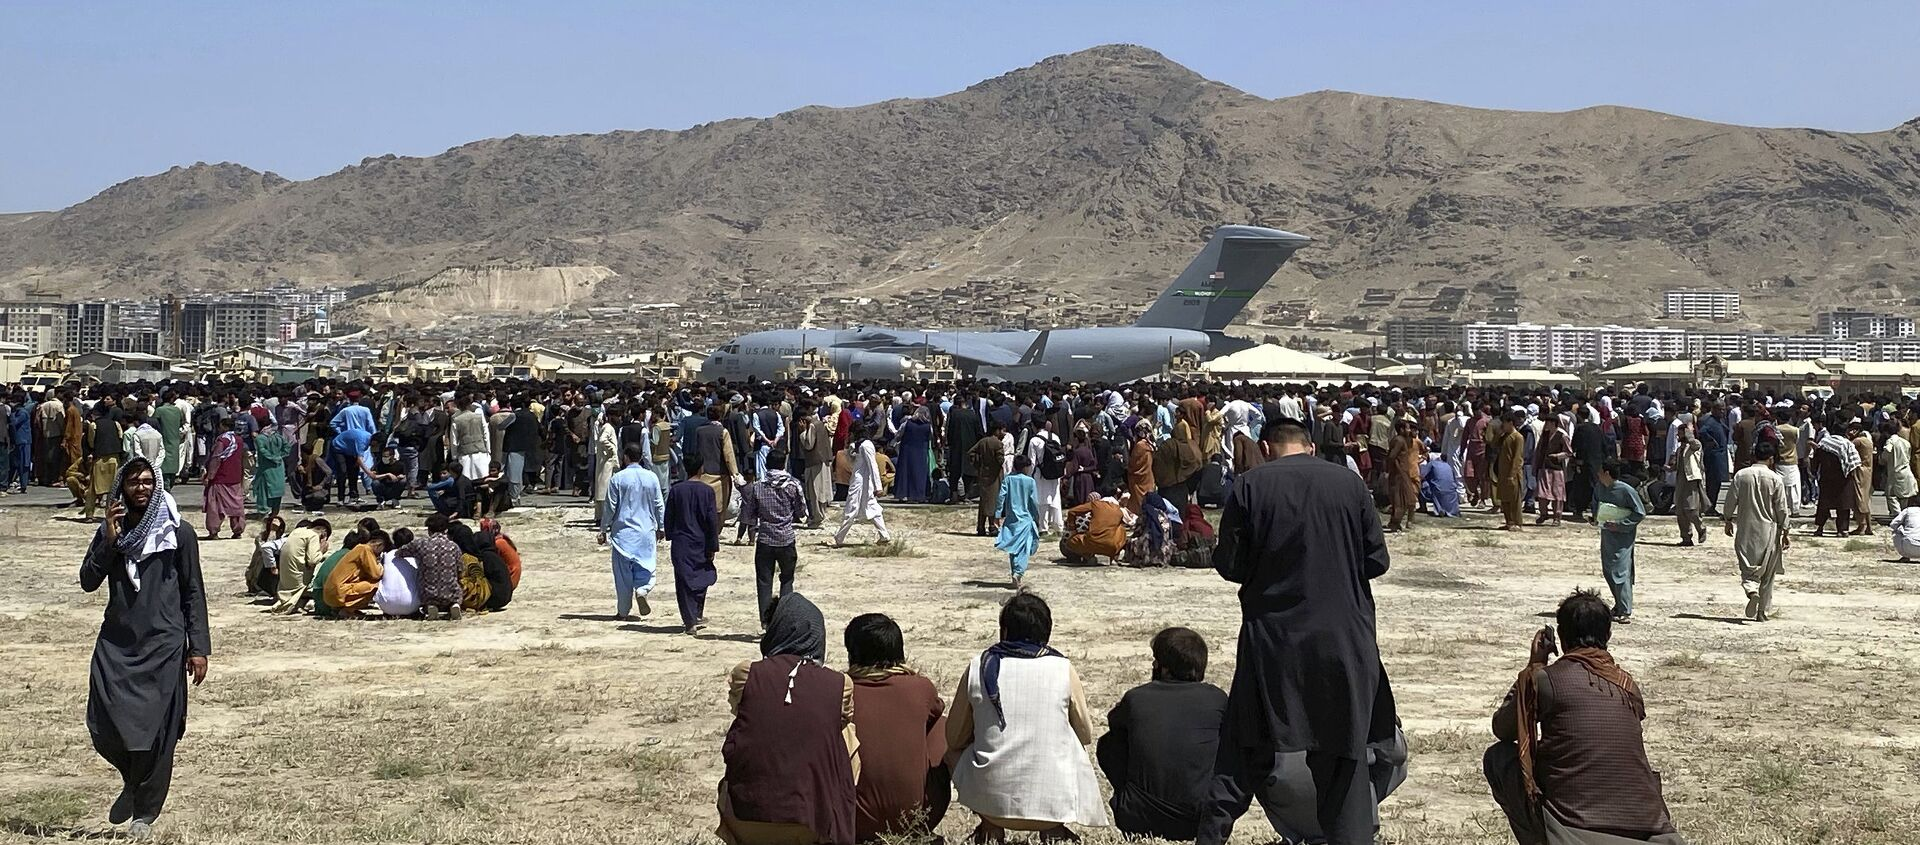 Hundreds of people gather near a U.S. Air Force C-17 transport plane at a perimeter at the international airport in Kabul, Afghanistan, Monday, Aug. 16, 2021. On Monday, the U.S. military and officials focus was on Kabul's airport, where thousands of Afghans trapped by the sudden Taliban takeover rushed the tarmac and clung to U.S. military planes deployed to fly out staffers of the U.S. Embassy, which shut down Sunday, and others - Sputnik International, 1920